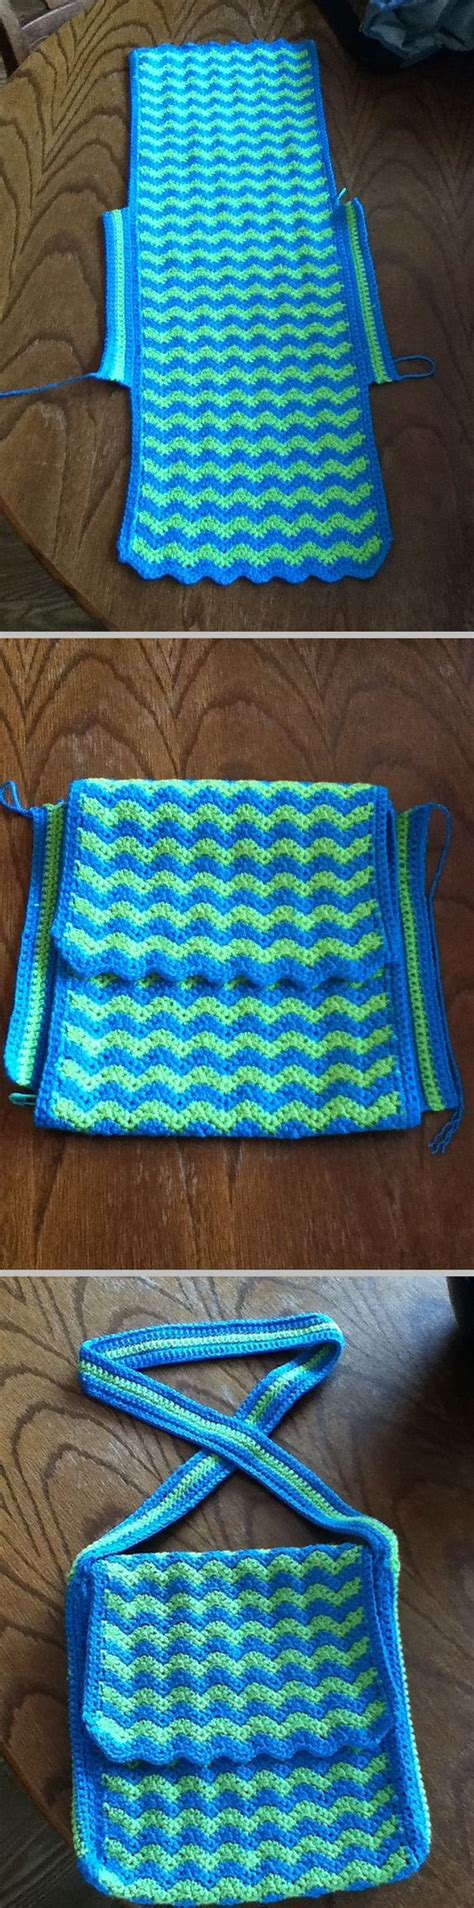 crochet bag pattern red heart free pattern ravelry and crochet purses on pinterest